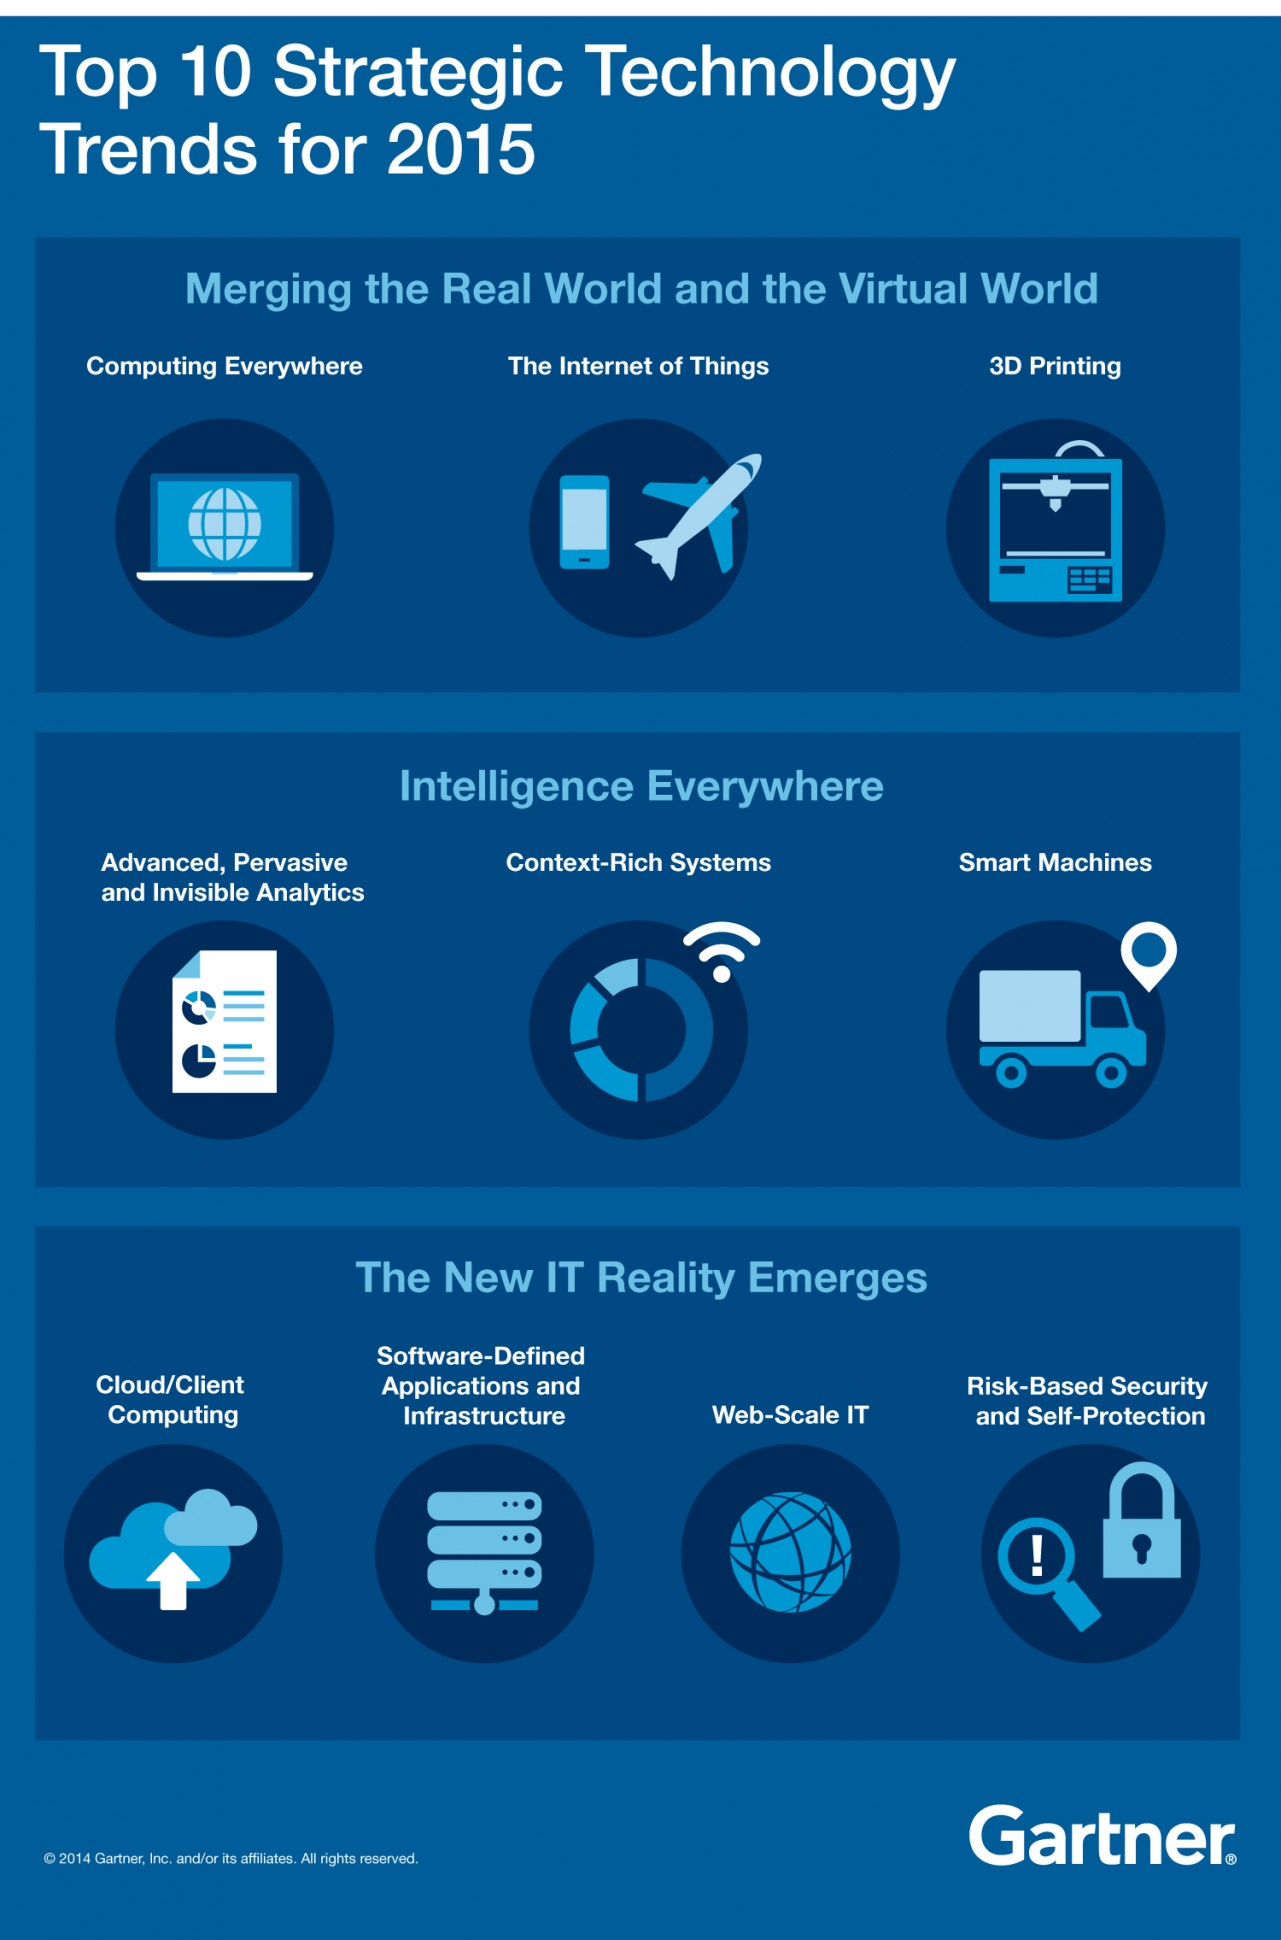 Gartner-2015-Top10TechTrends_infographic-2-1281x1940